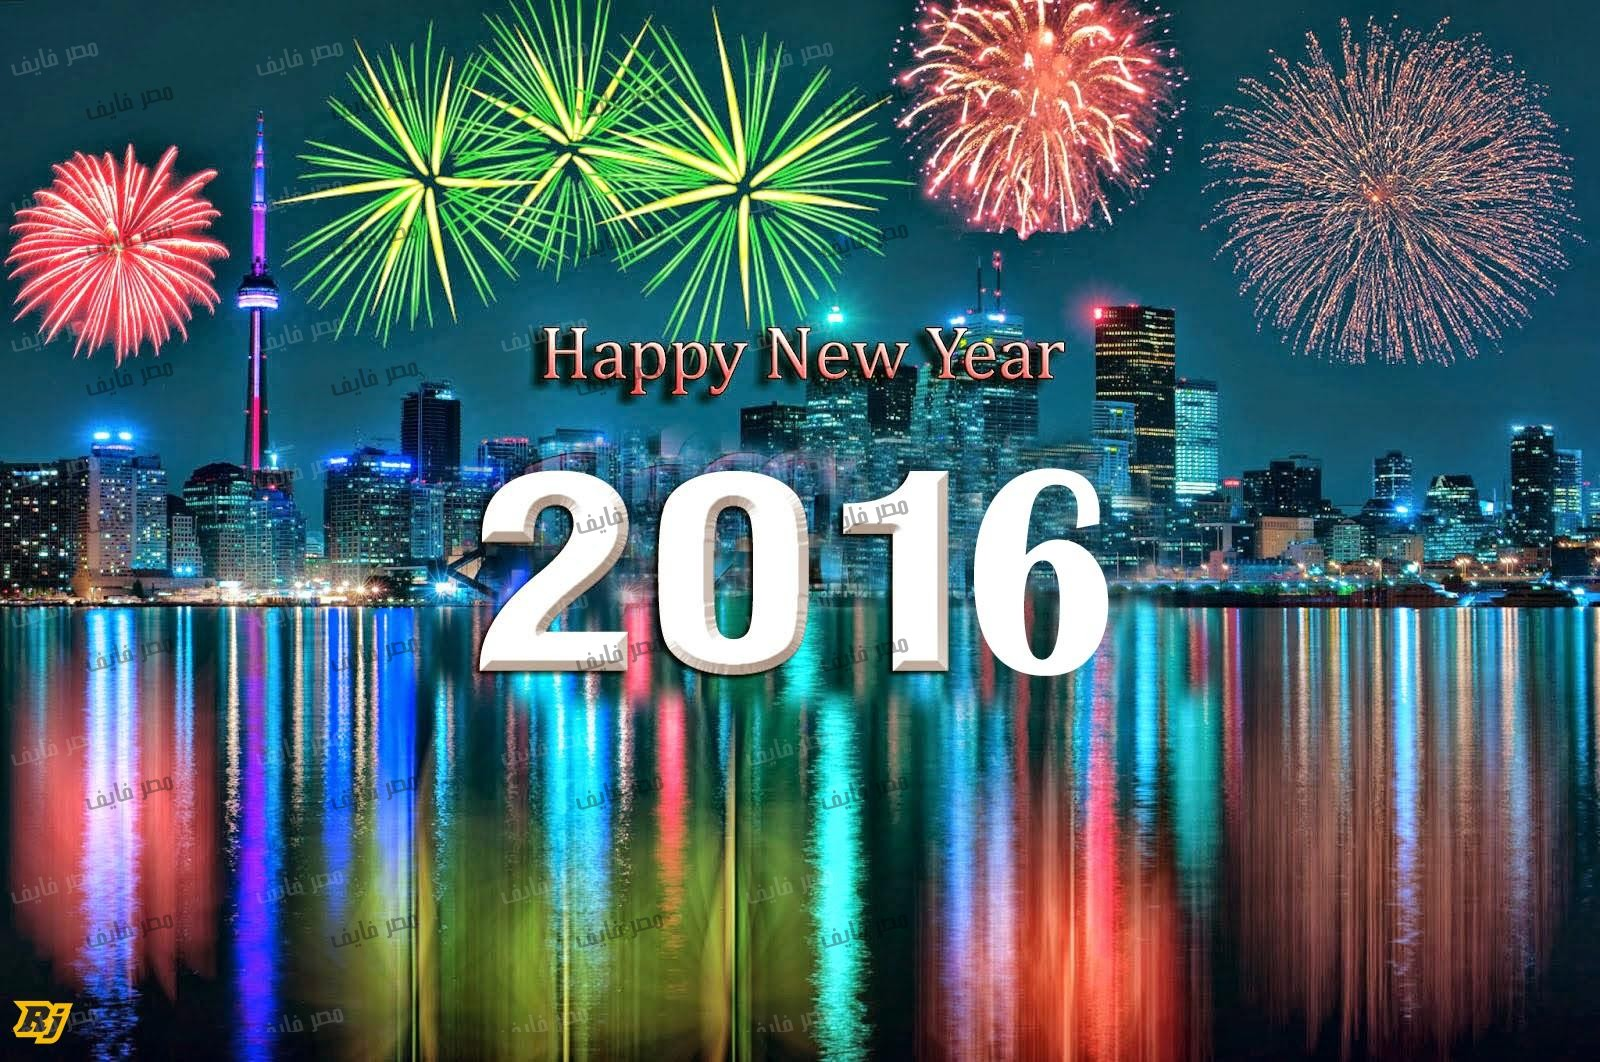 http://www.misr5.com/wp-content/uploads/2013/12/Happy-New-Year-2015-hd-wallpaper.jpg